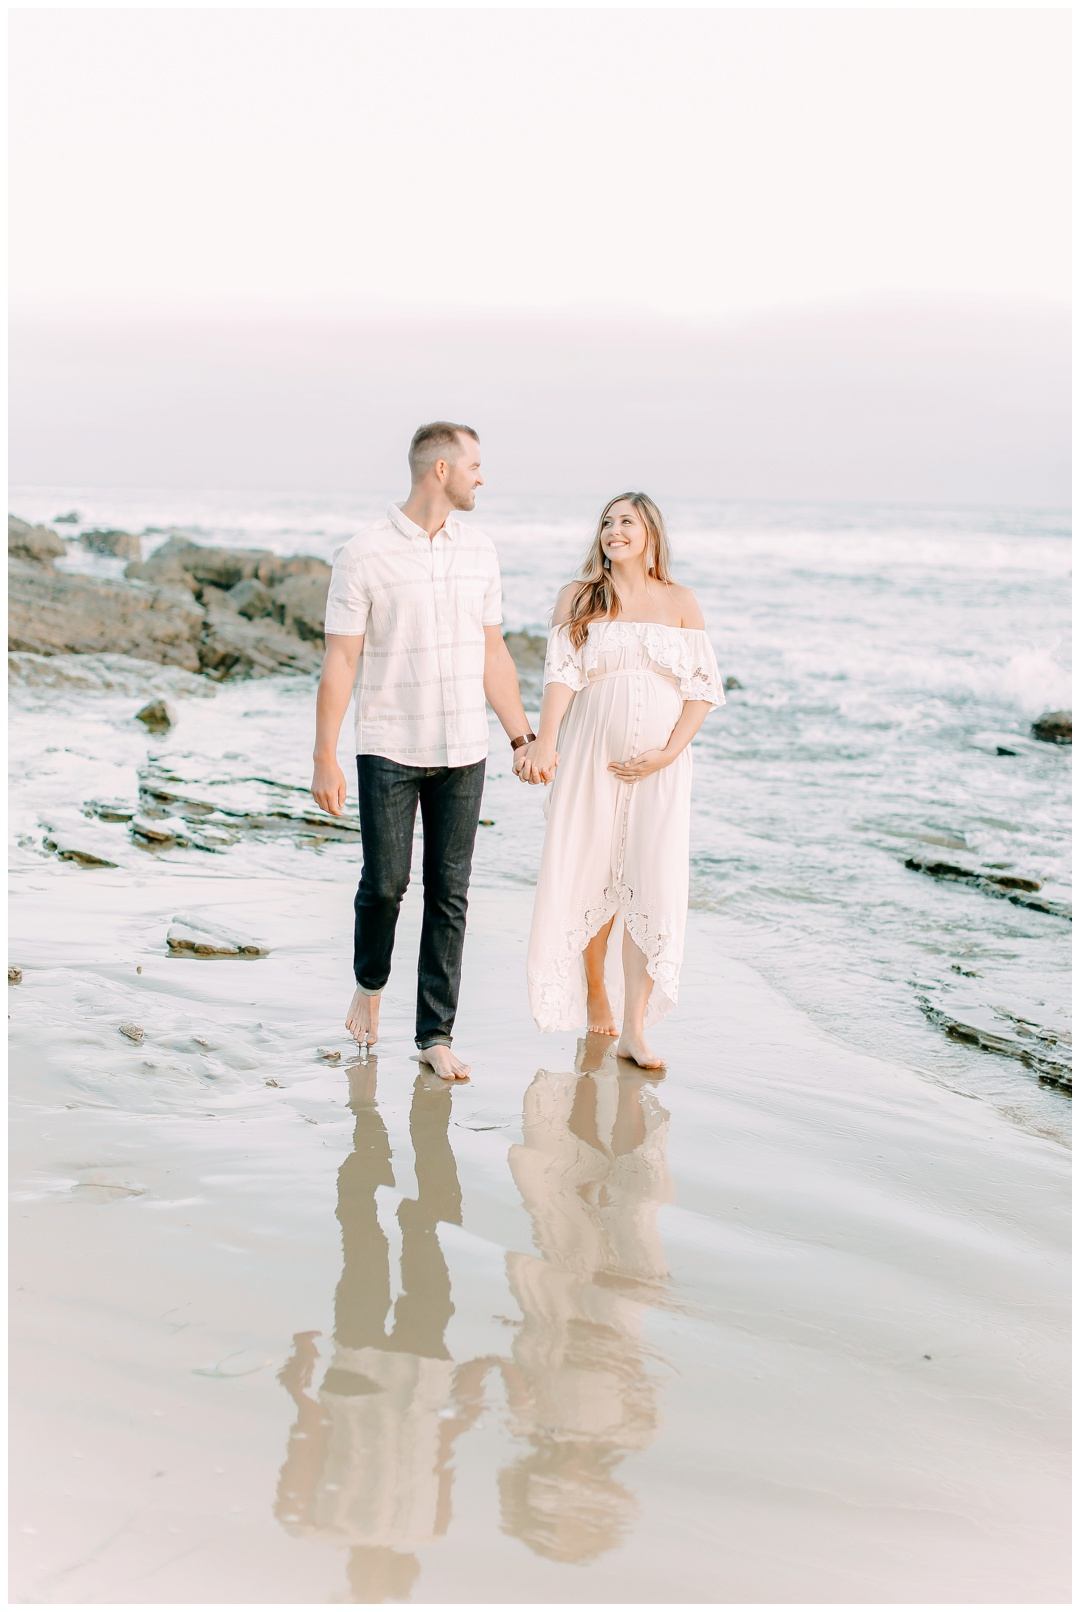 Newport_Beach_Maternity_Photographer_Beach_Maternity_Photography_Cori_Kleckner_Photography_1020.jpg